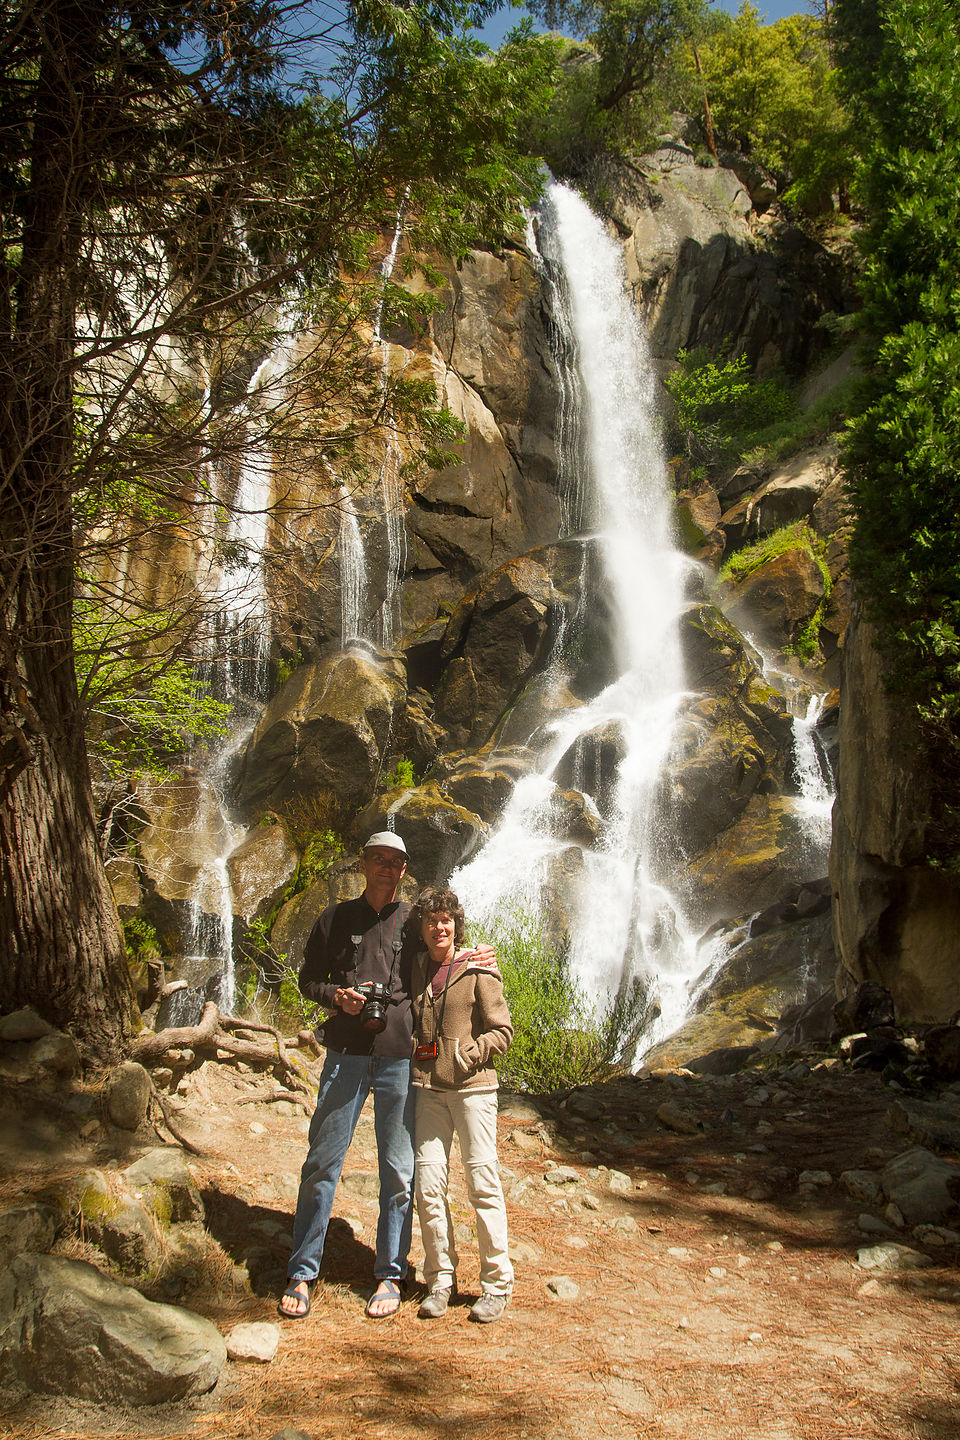 Mon and Dad by Waterfall - TJG